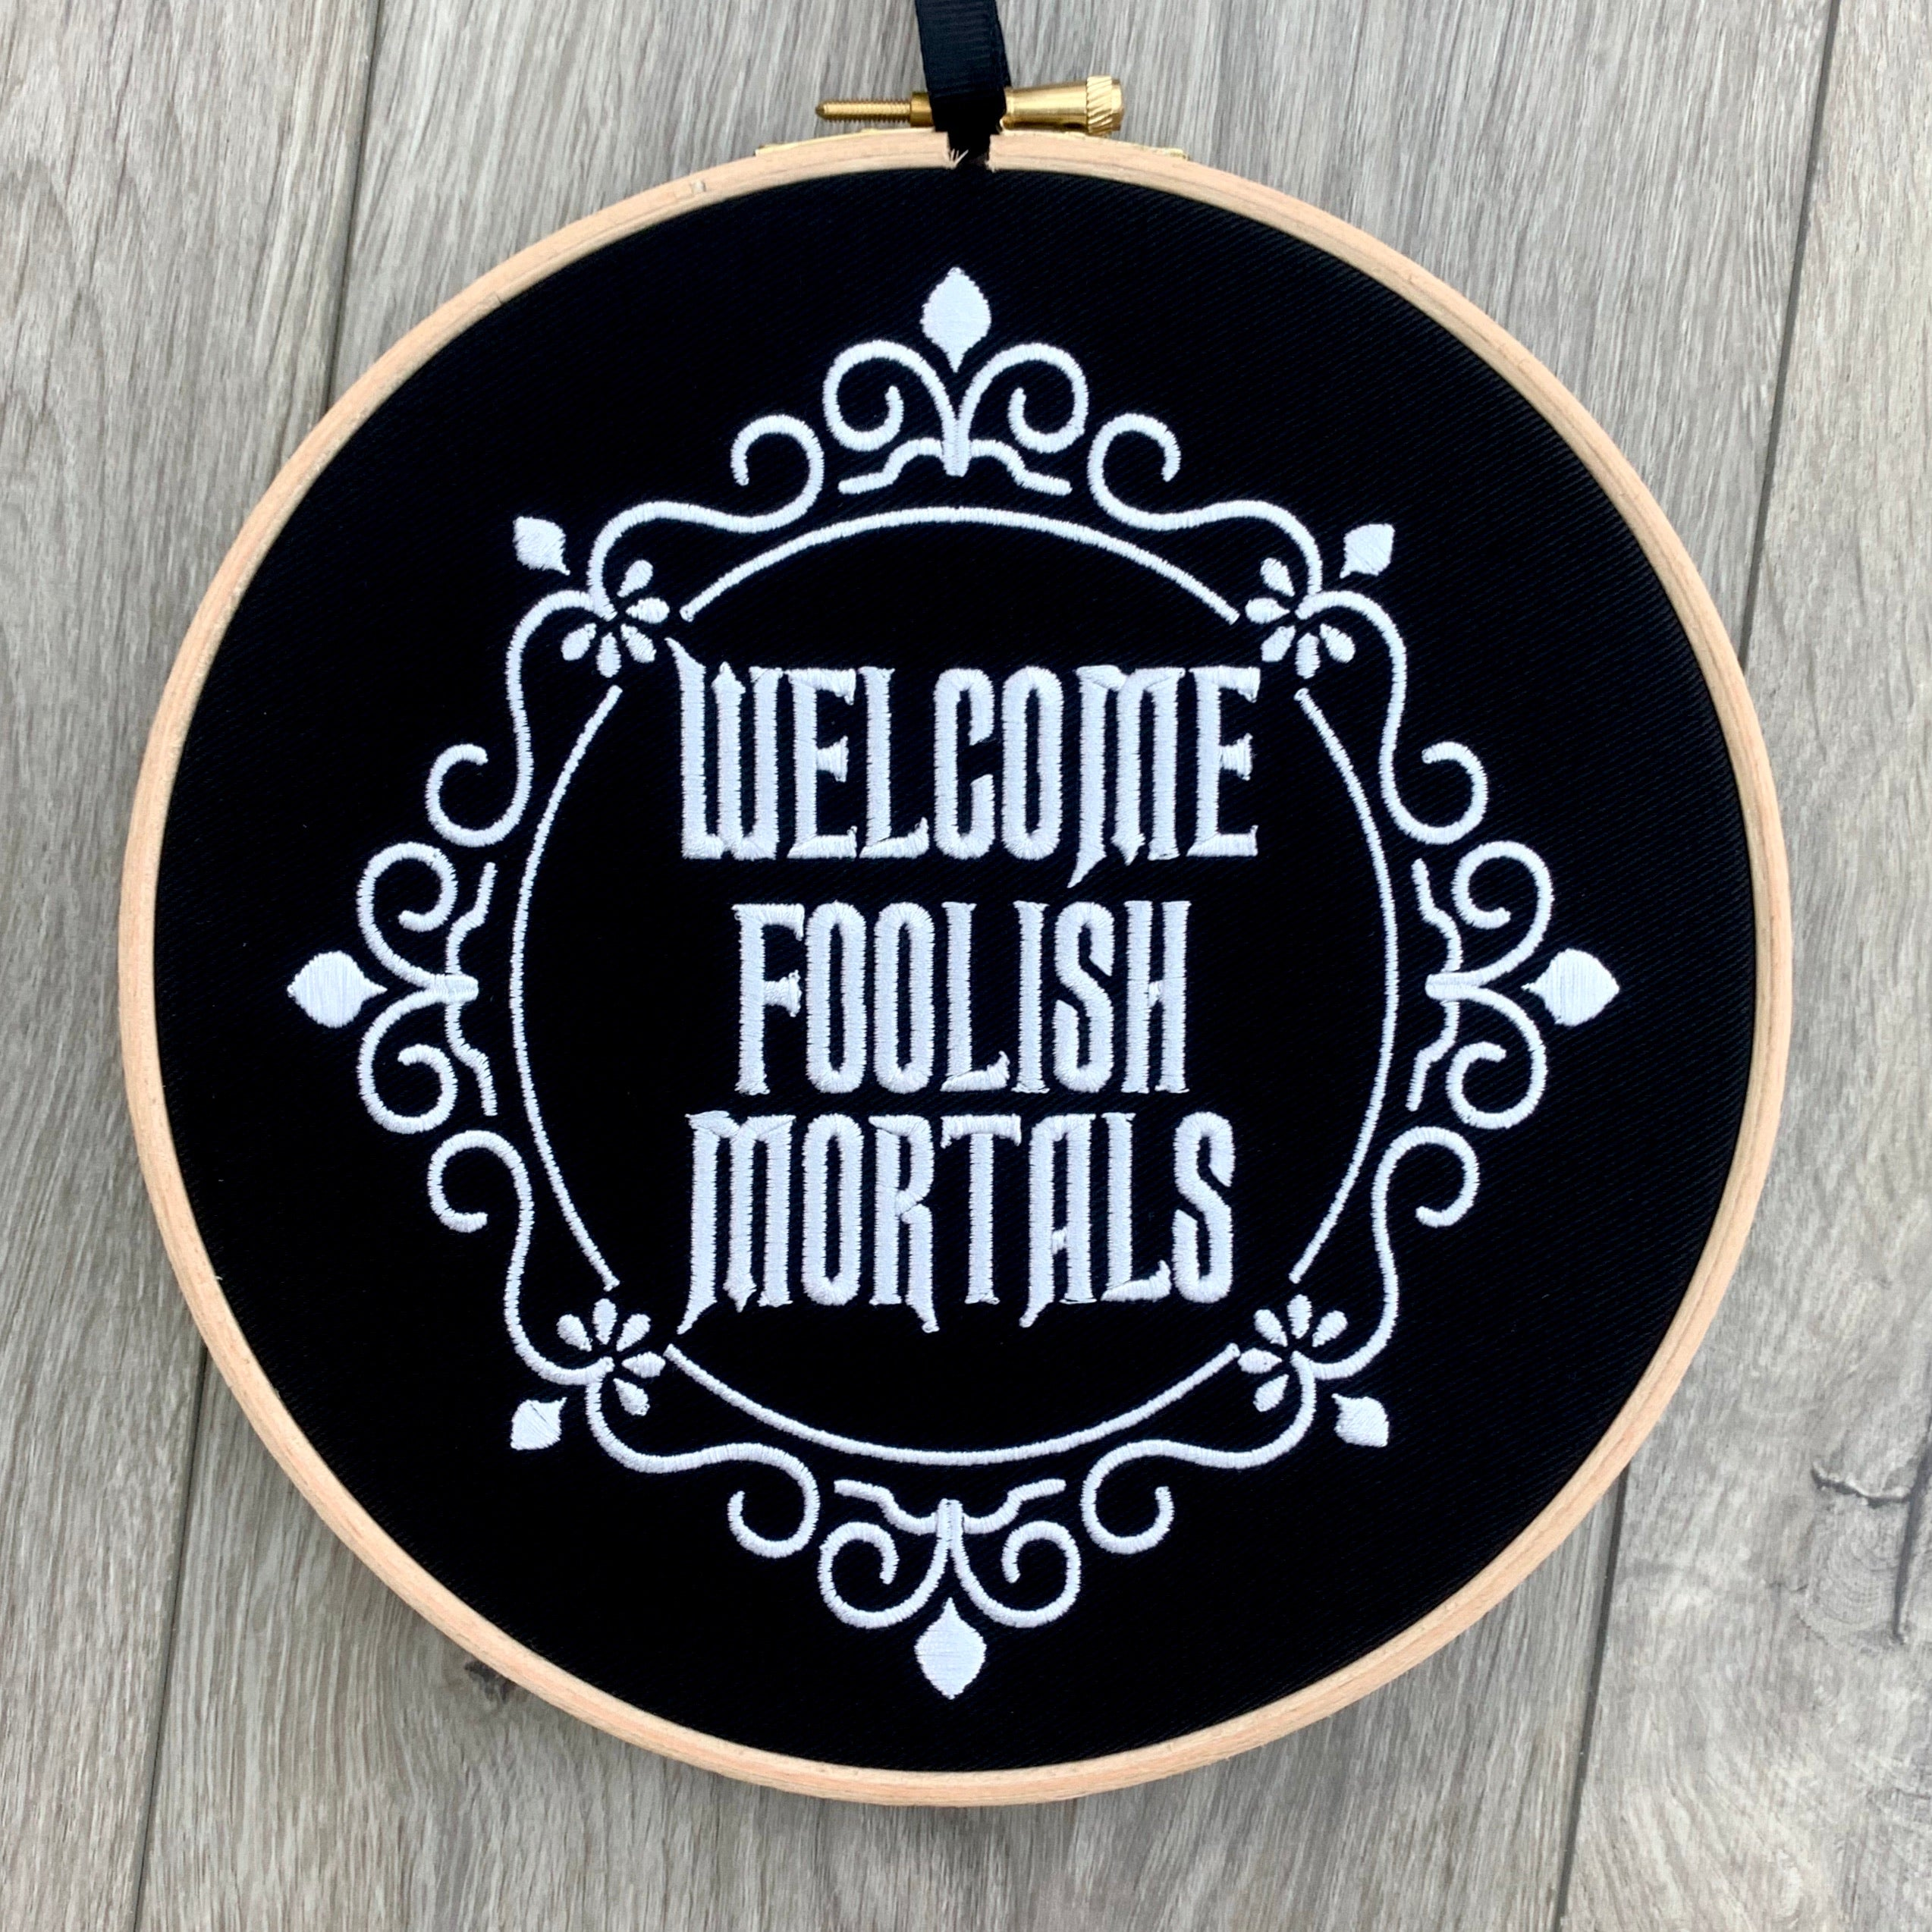 Welcome foolish mortals, Embroidery hoop art